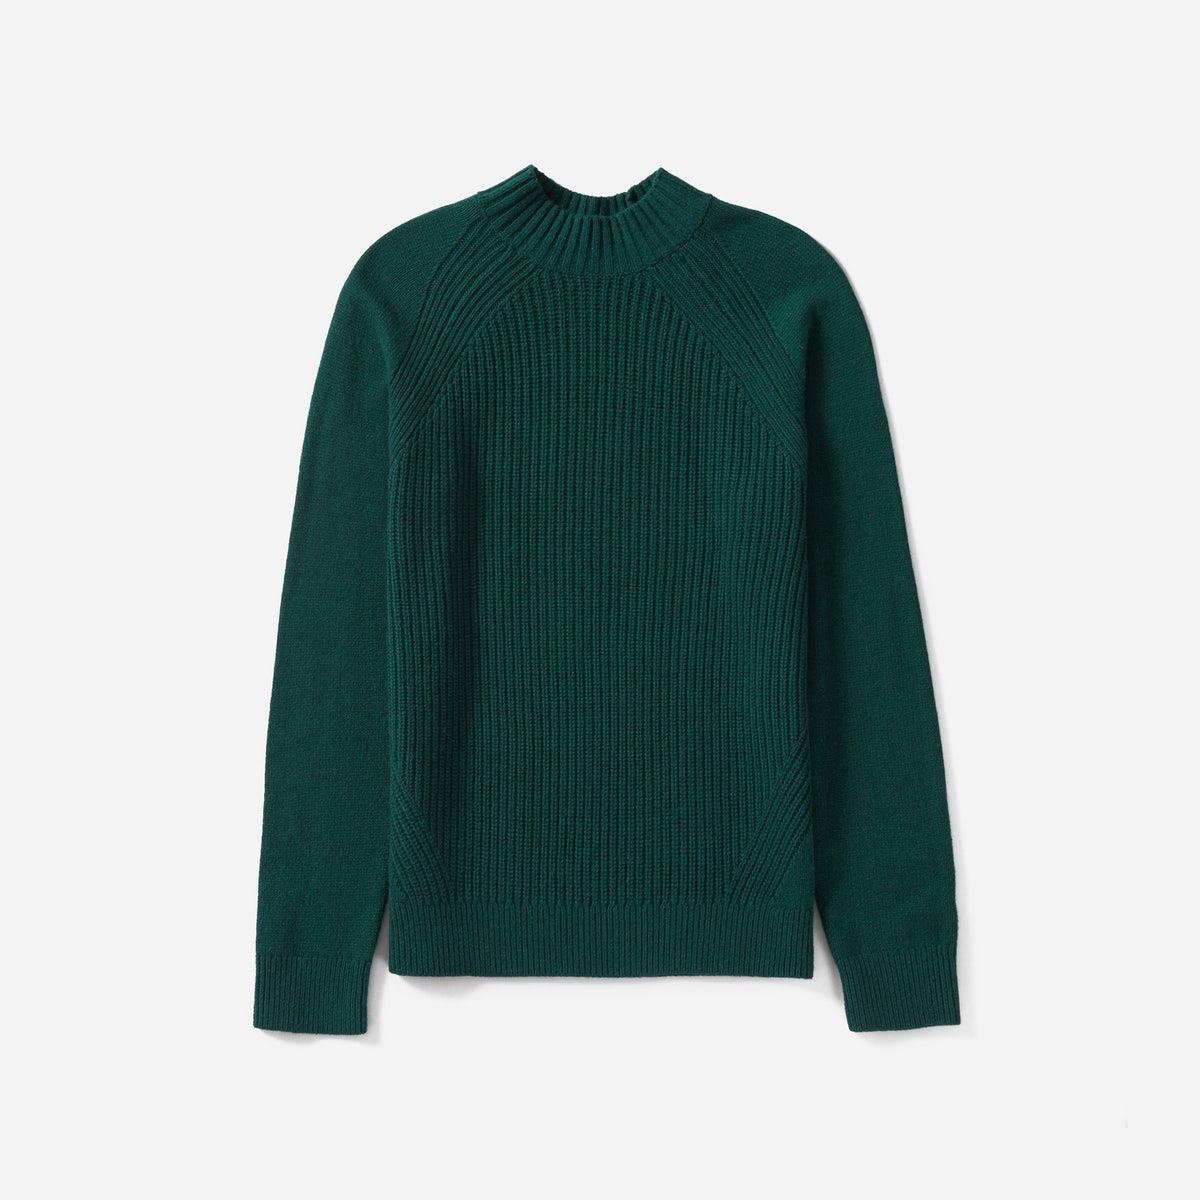 The Wool-Cashmere Rib